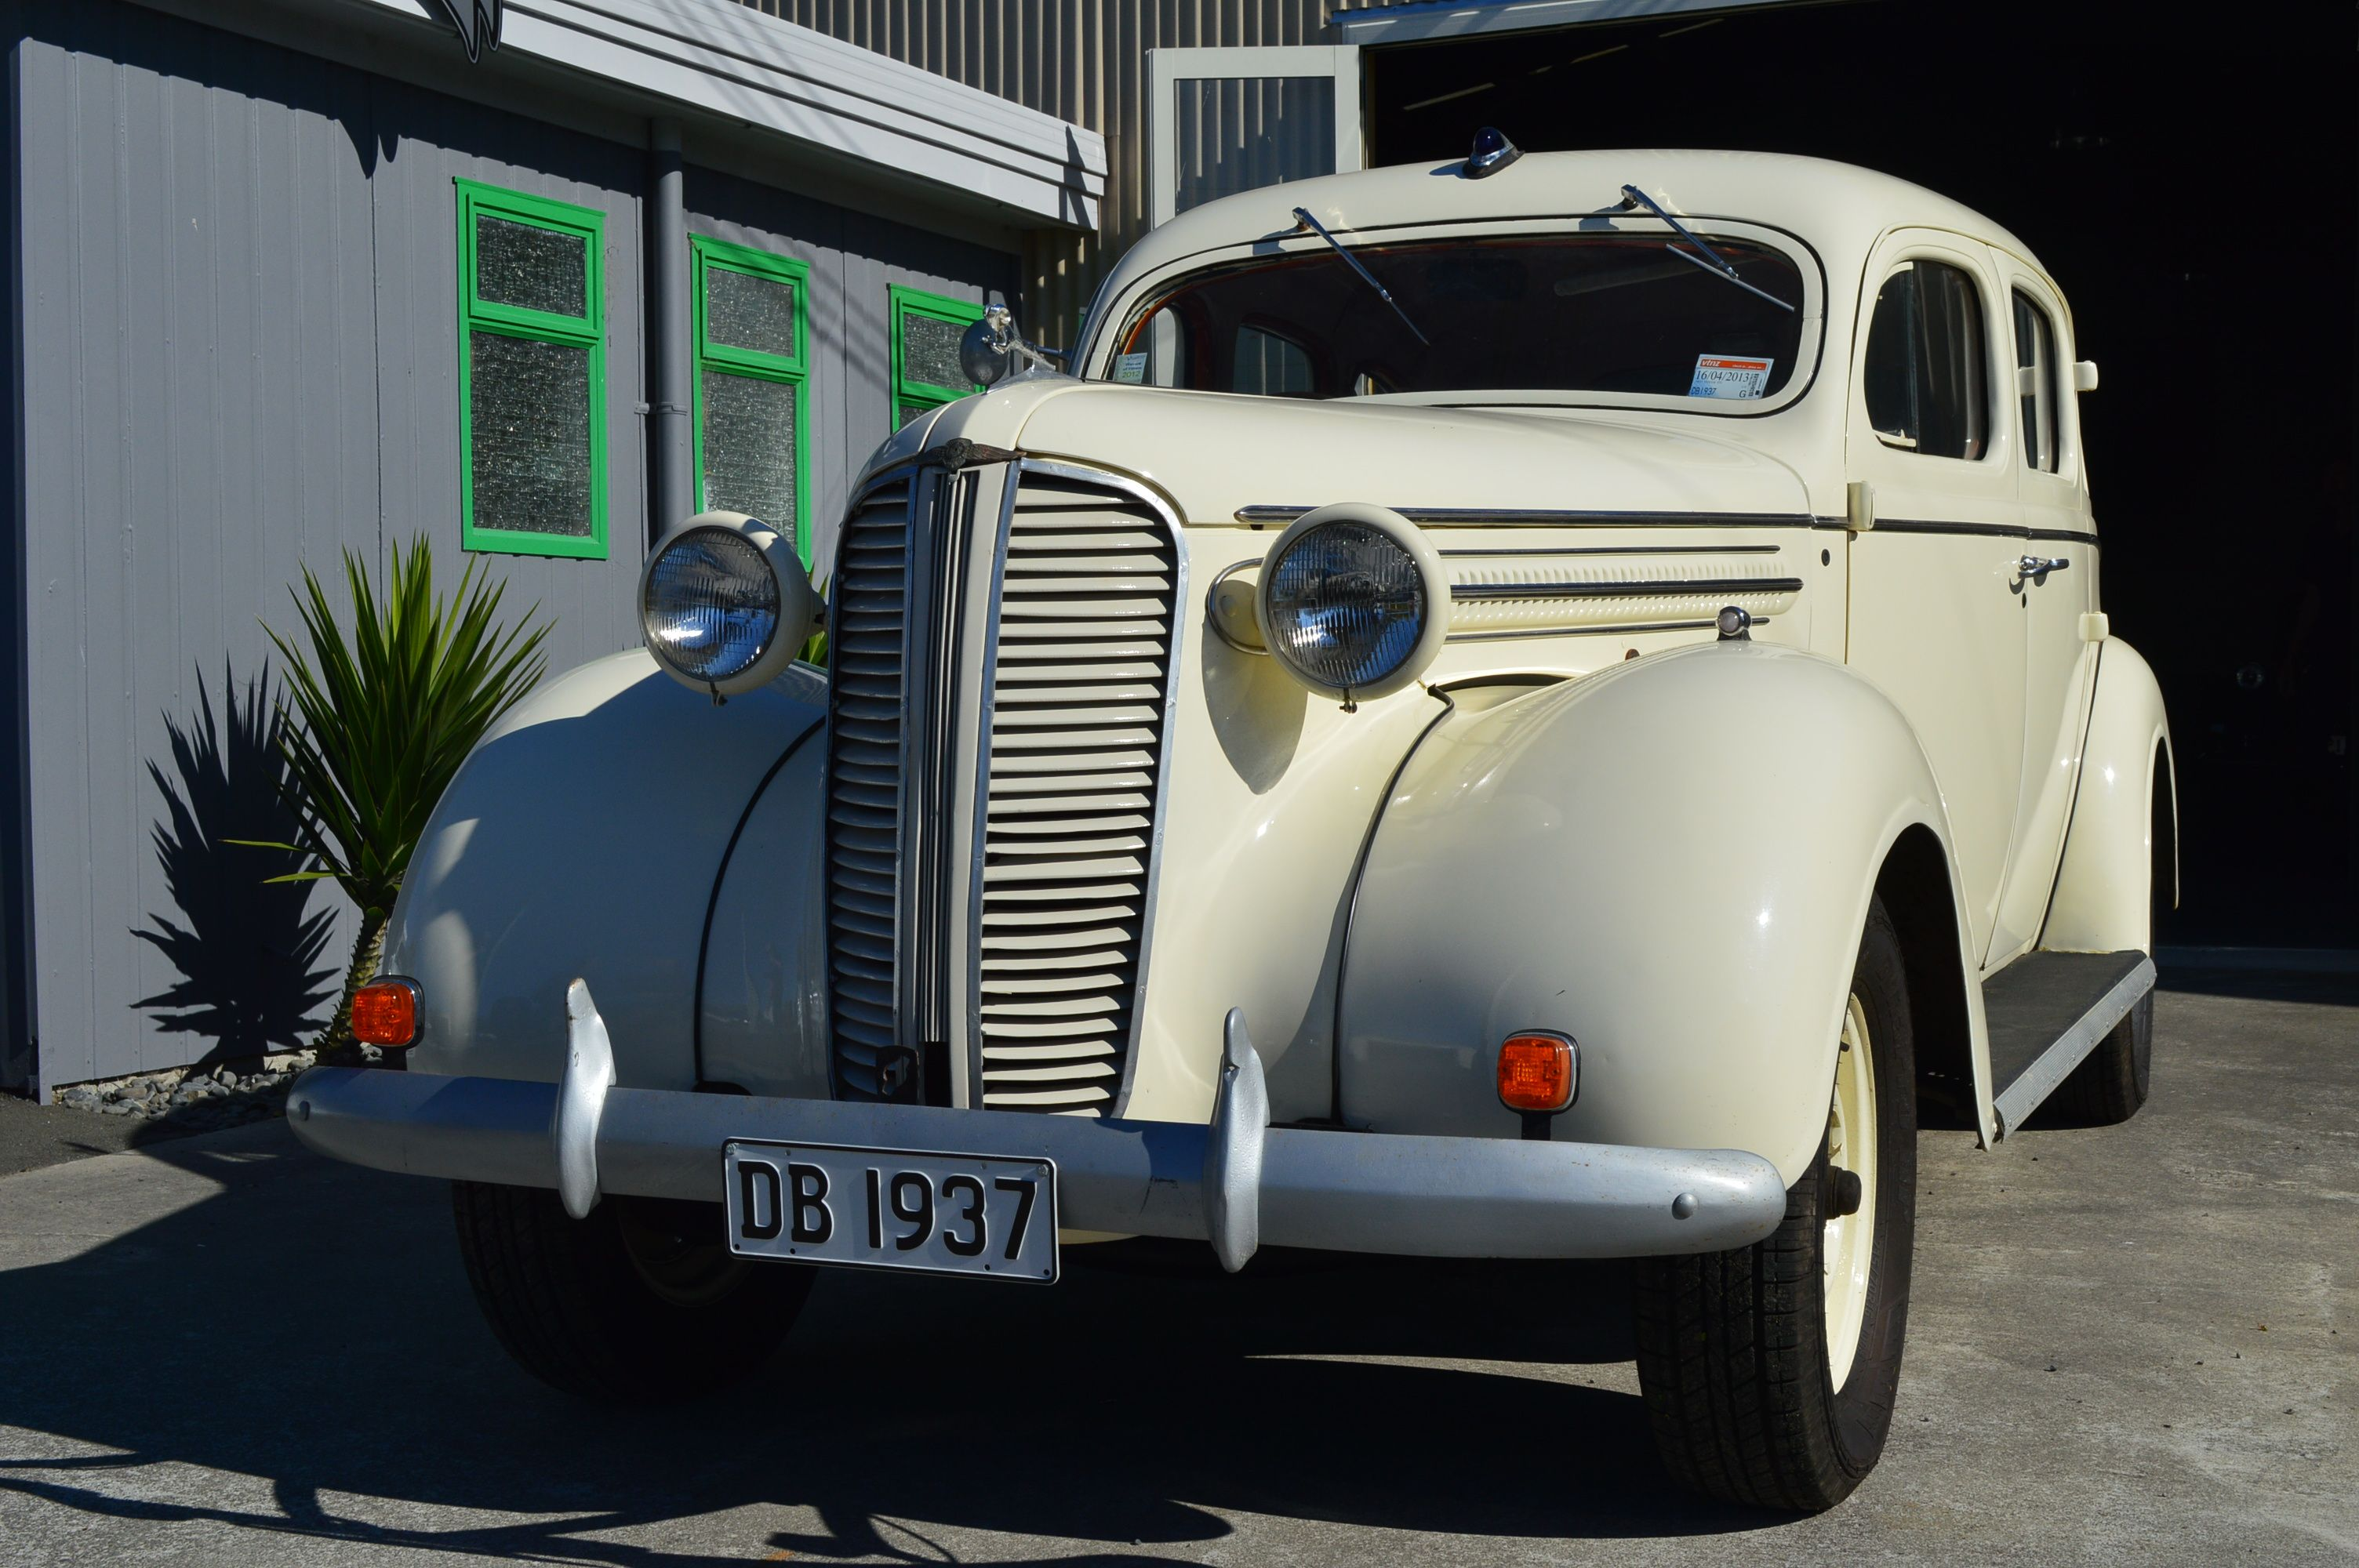 The 1937 Dodge www.hooters-hire.co.nz